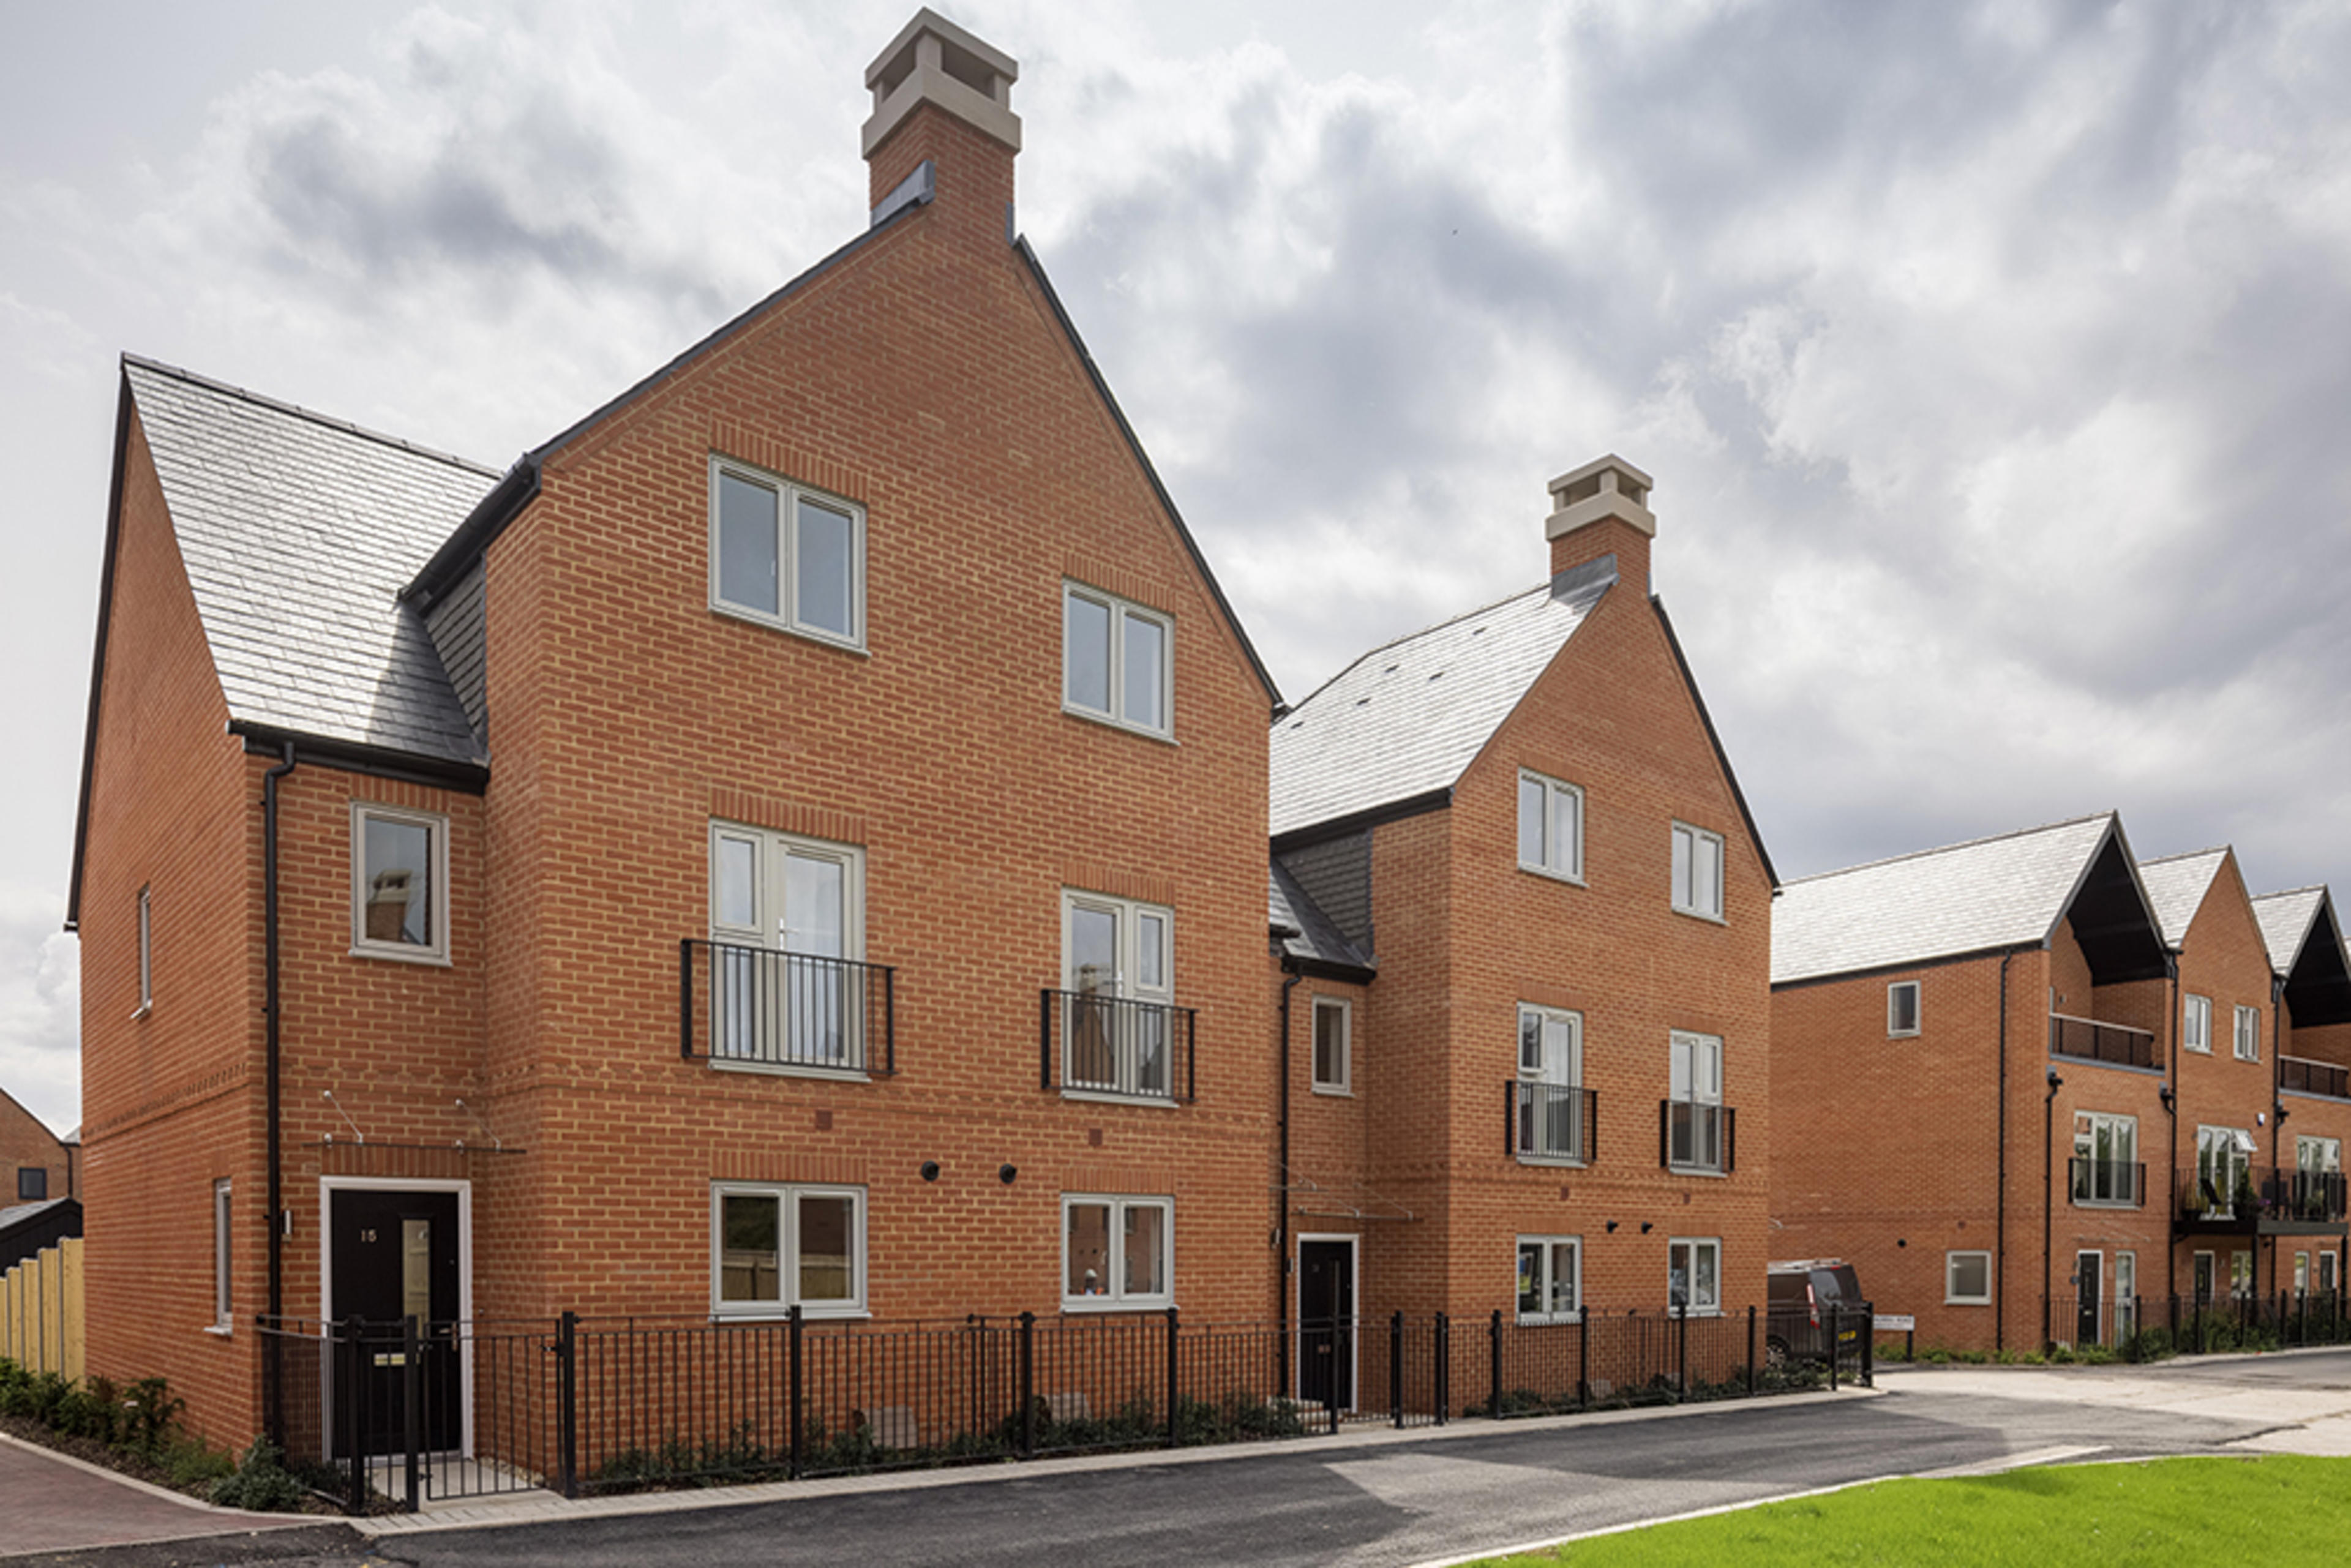 kings-barton-photography-shared-ownership-3-bed-external-4